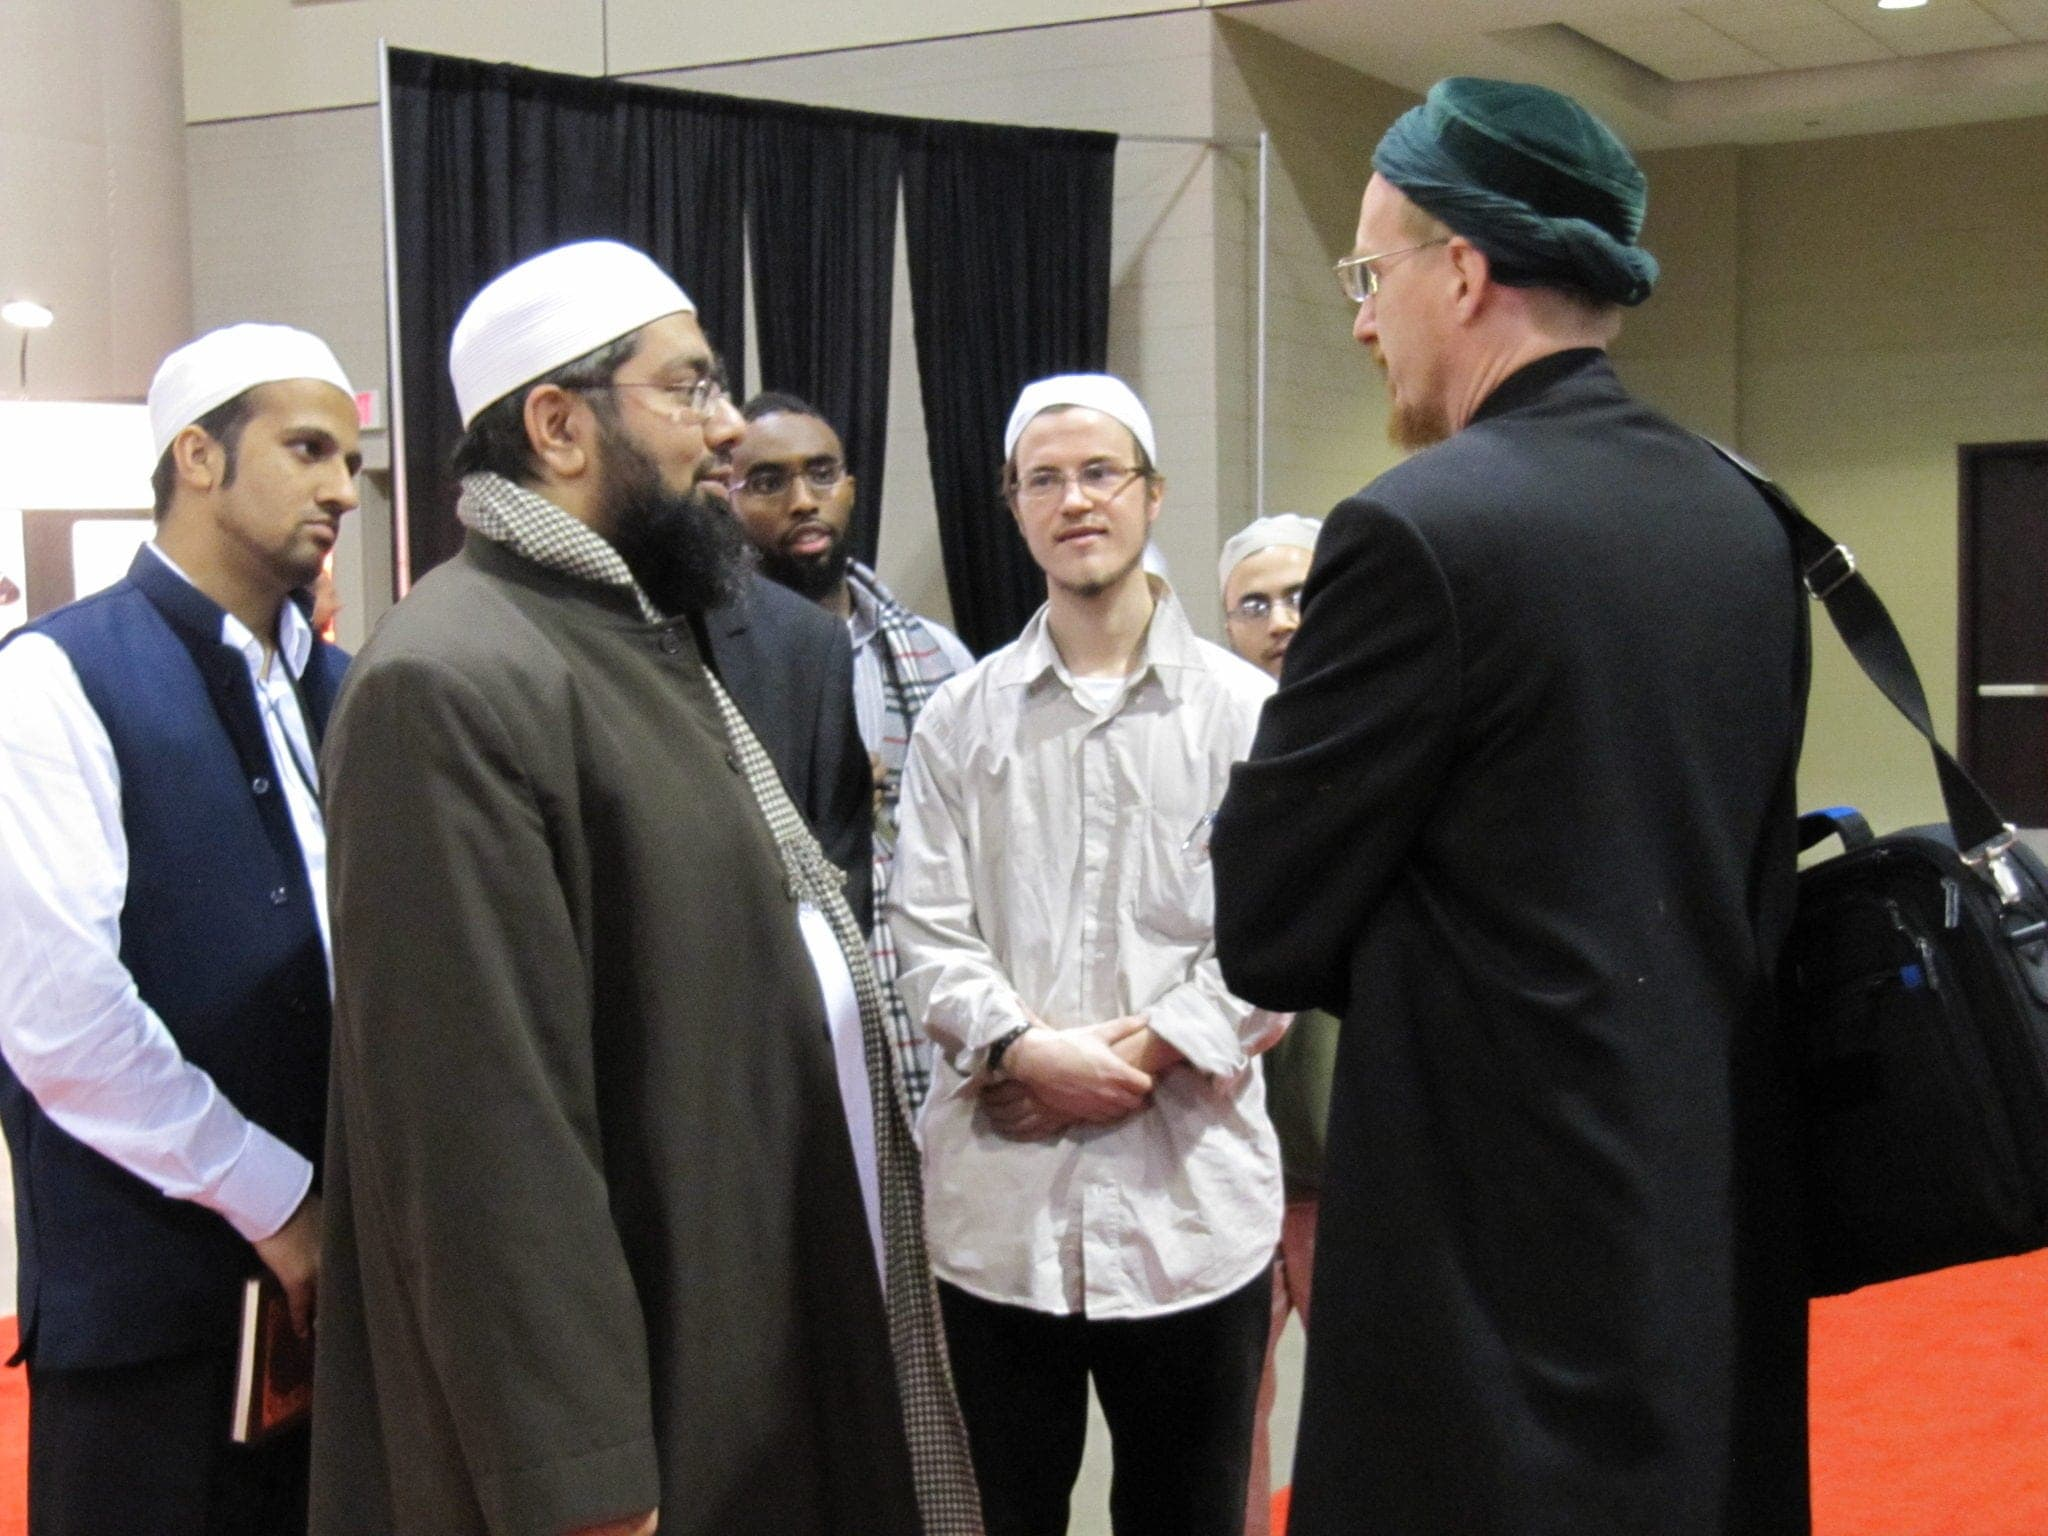 Pictures from the 8th Annual Reviving the Islamic Spirit